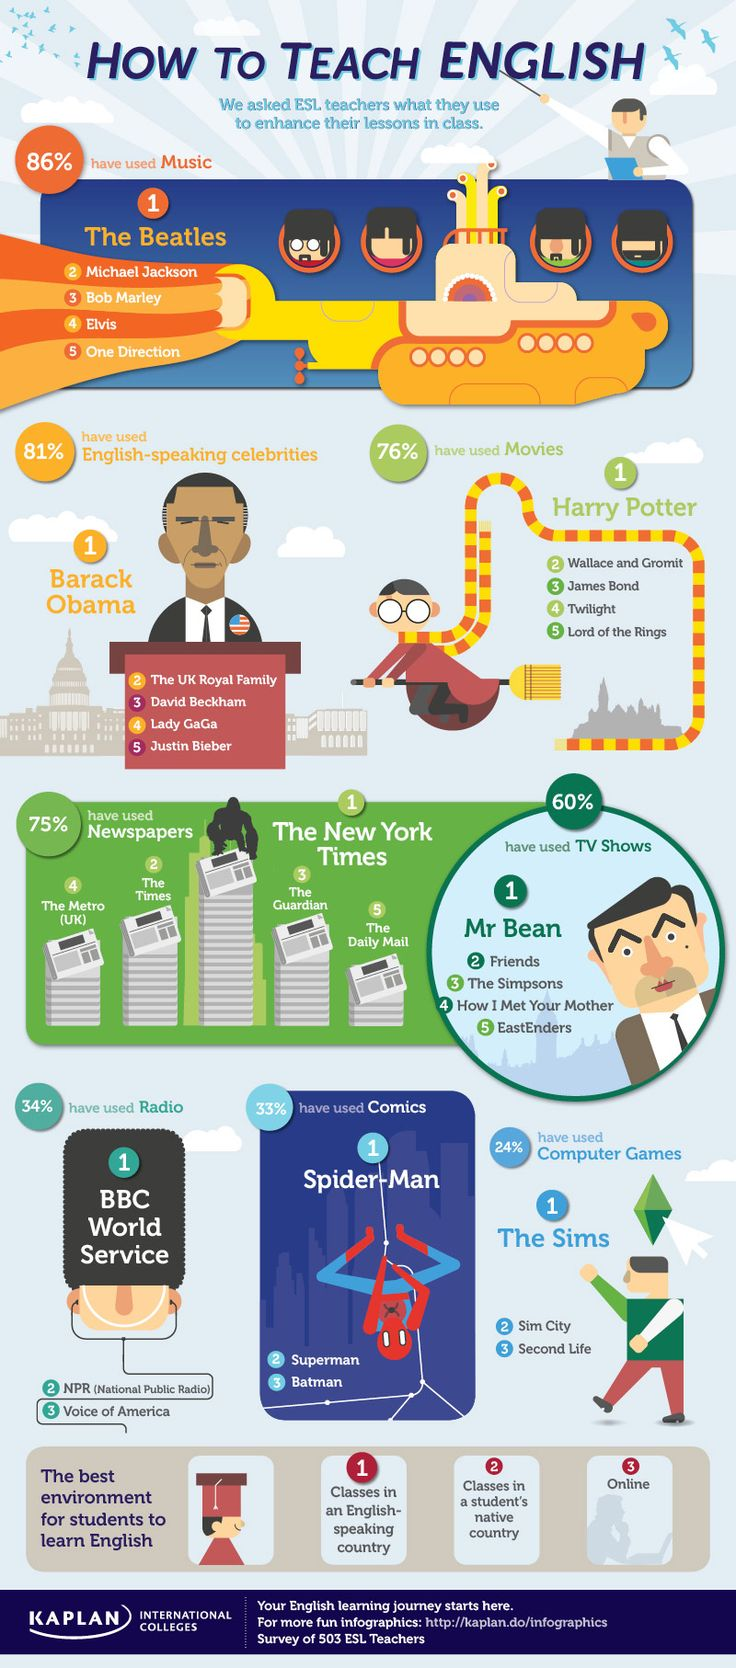 How to Teach English Infographic, from Kaplan. Beatles, Sims, Spider Man, etc. http://kaplaninternational.com/blog/wp-content/uploads/2013/04/howtoteach_kaplan_infographic1.jpg